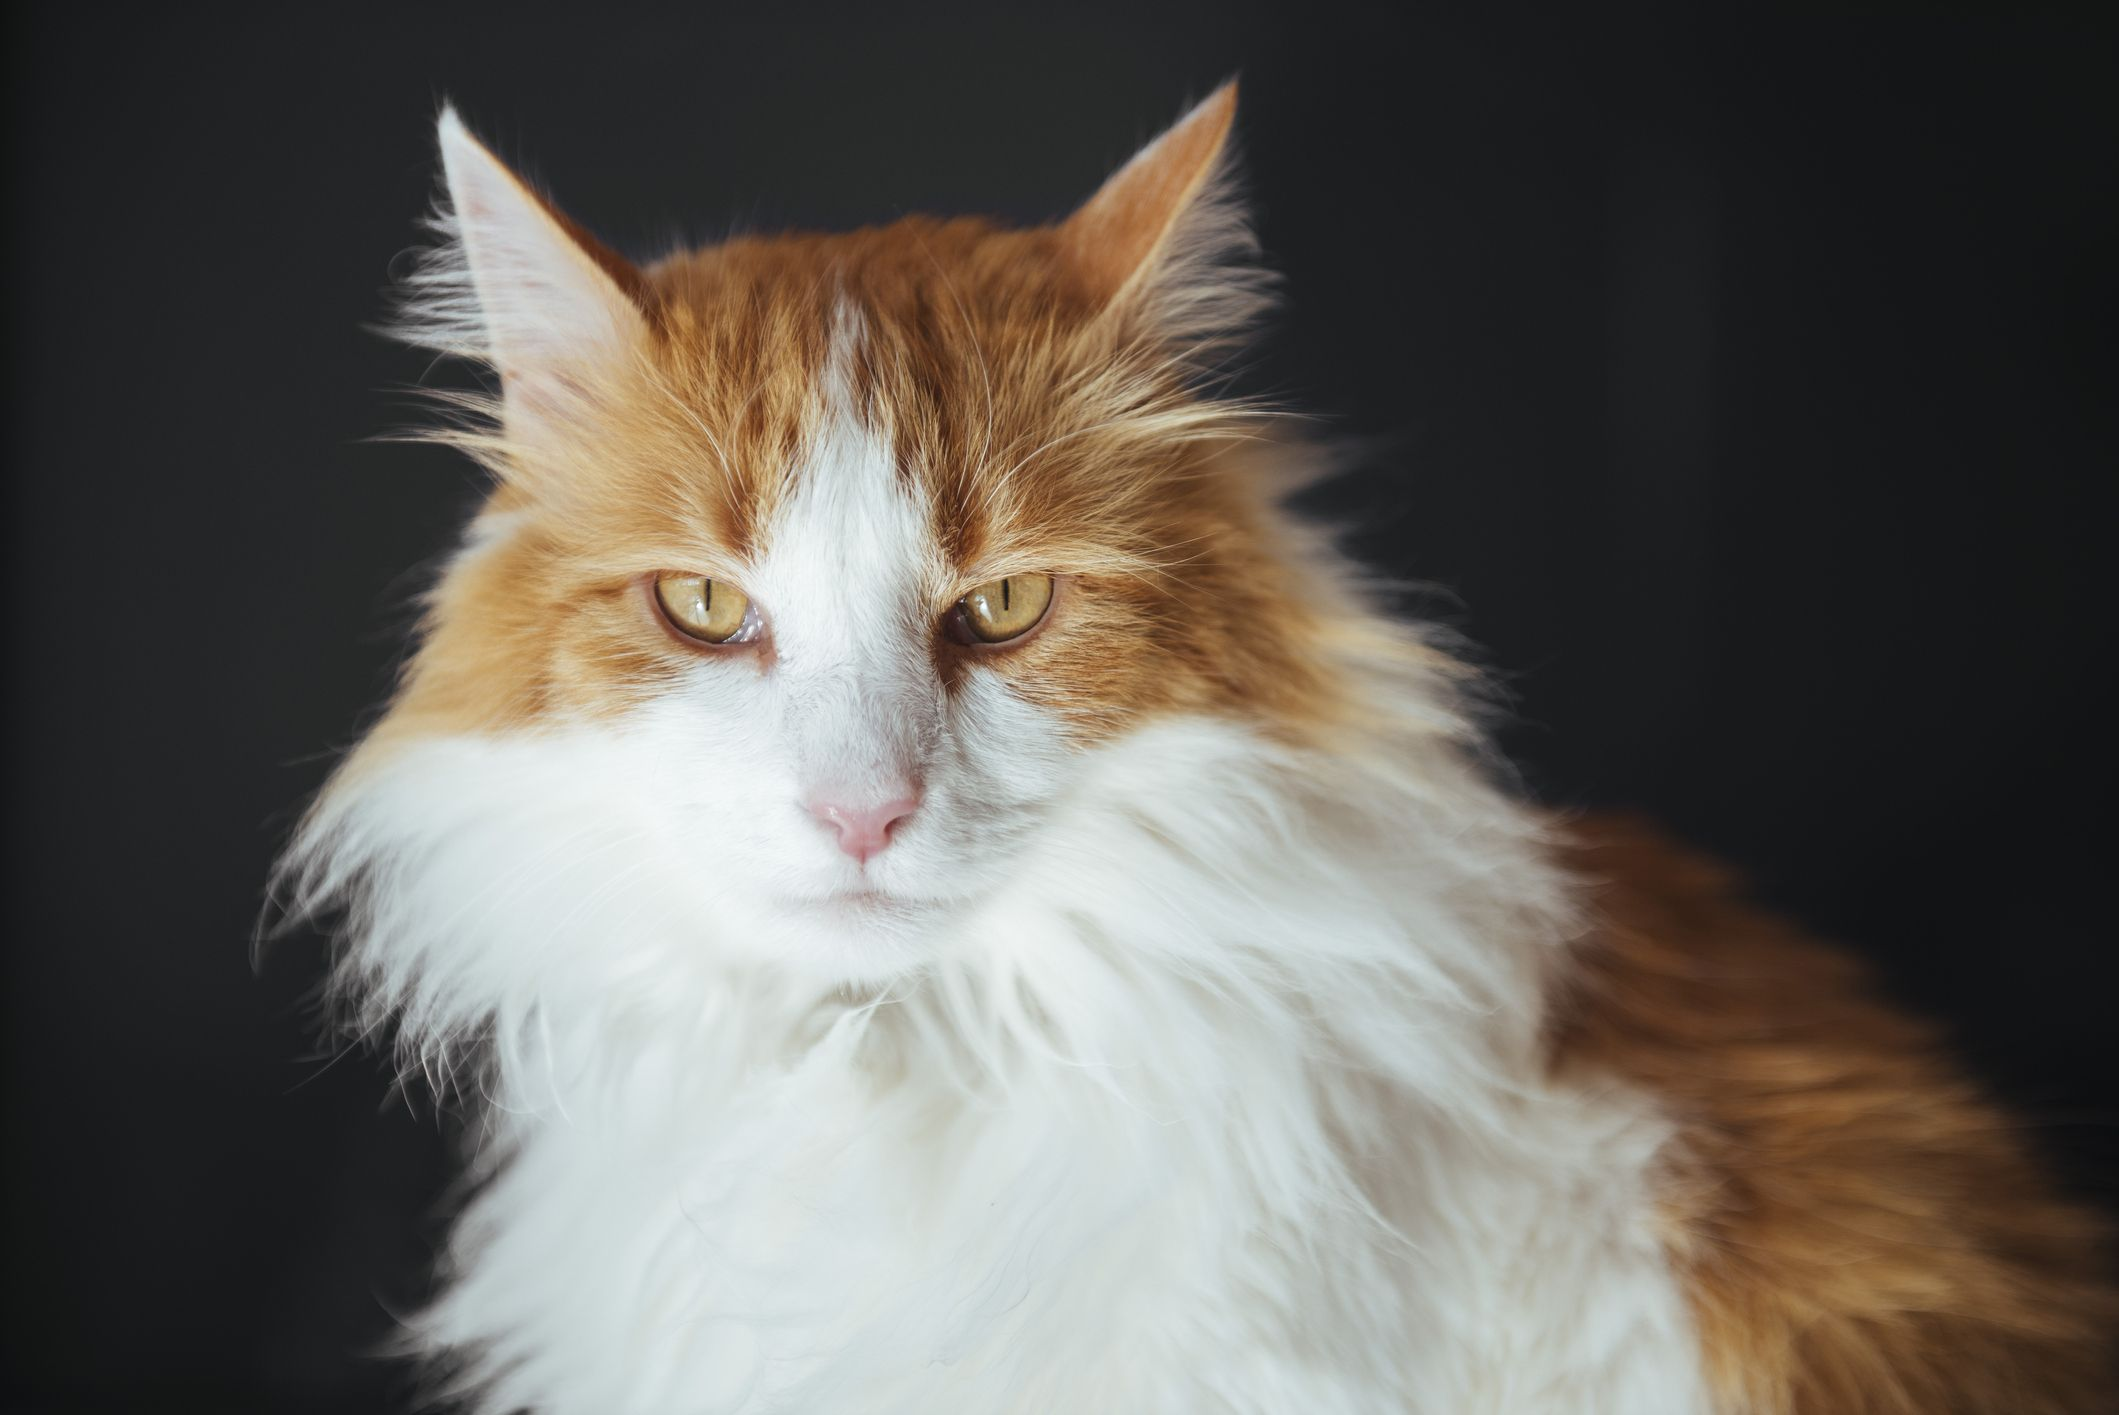 10 Long-Haired Cats: Maine Coon, Norwegian Forest, and More